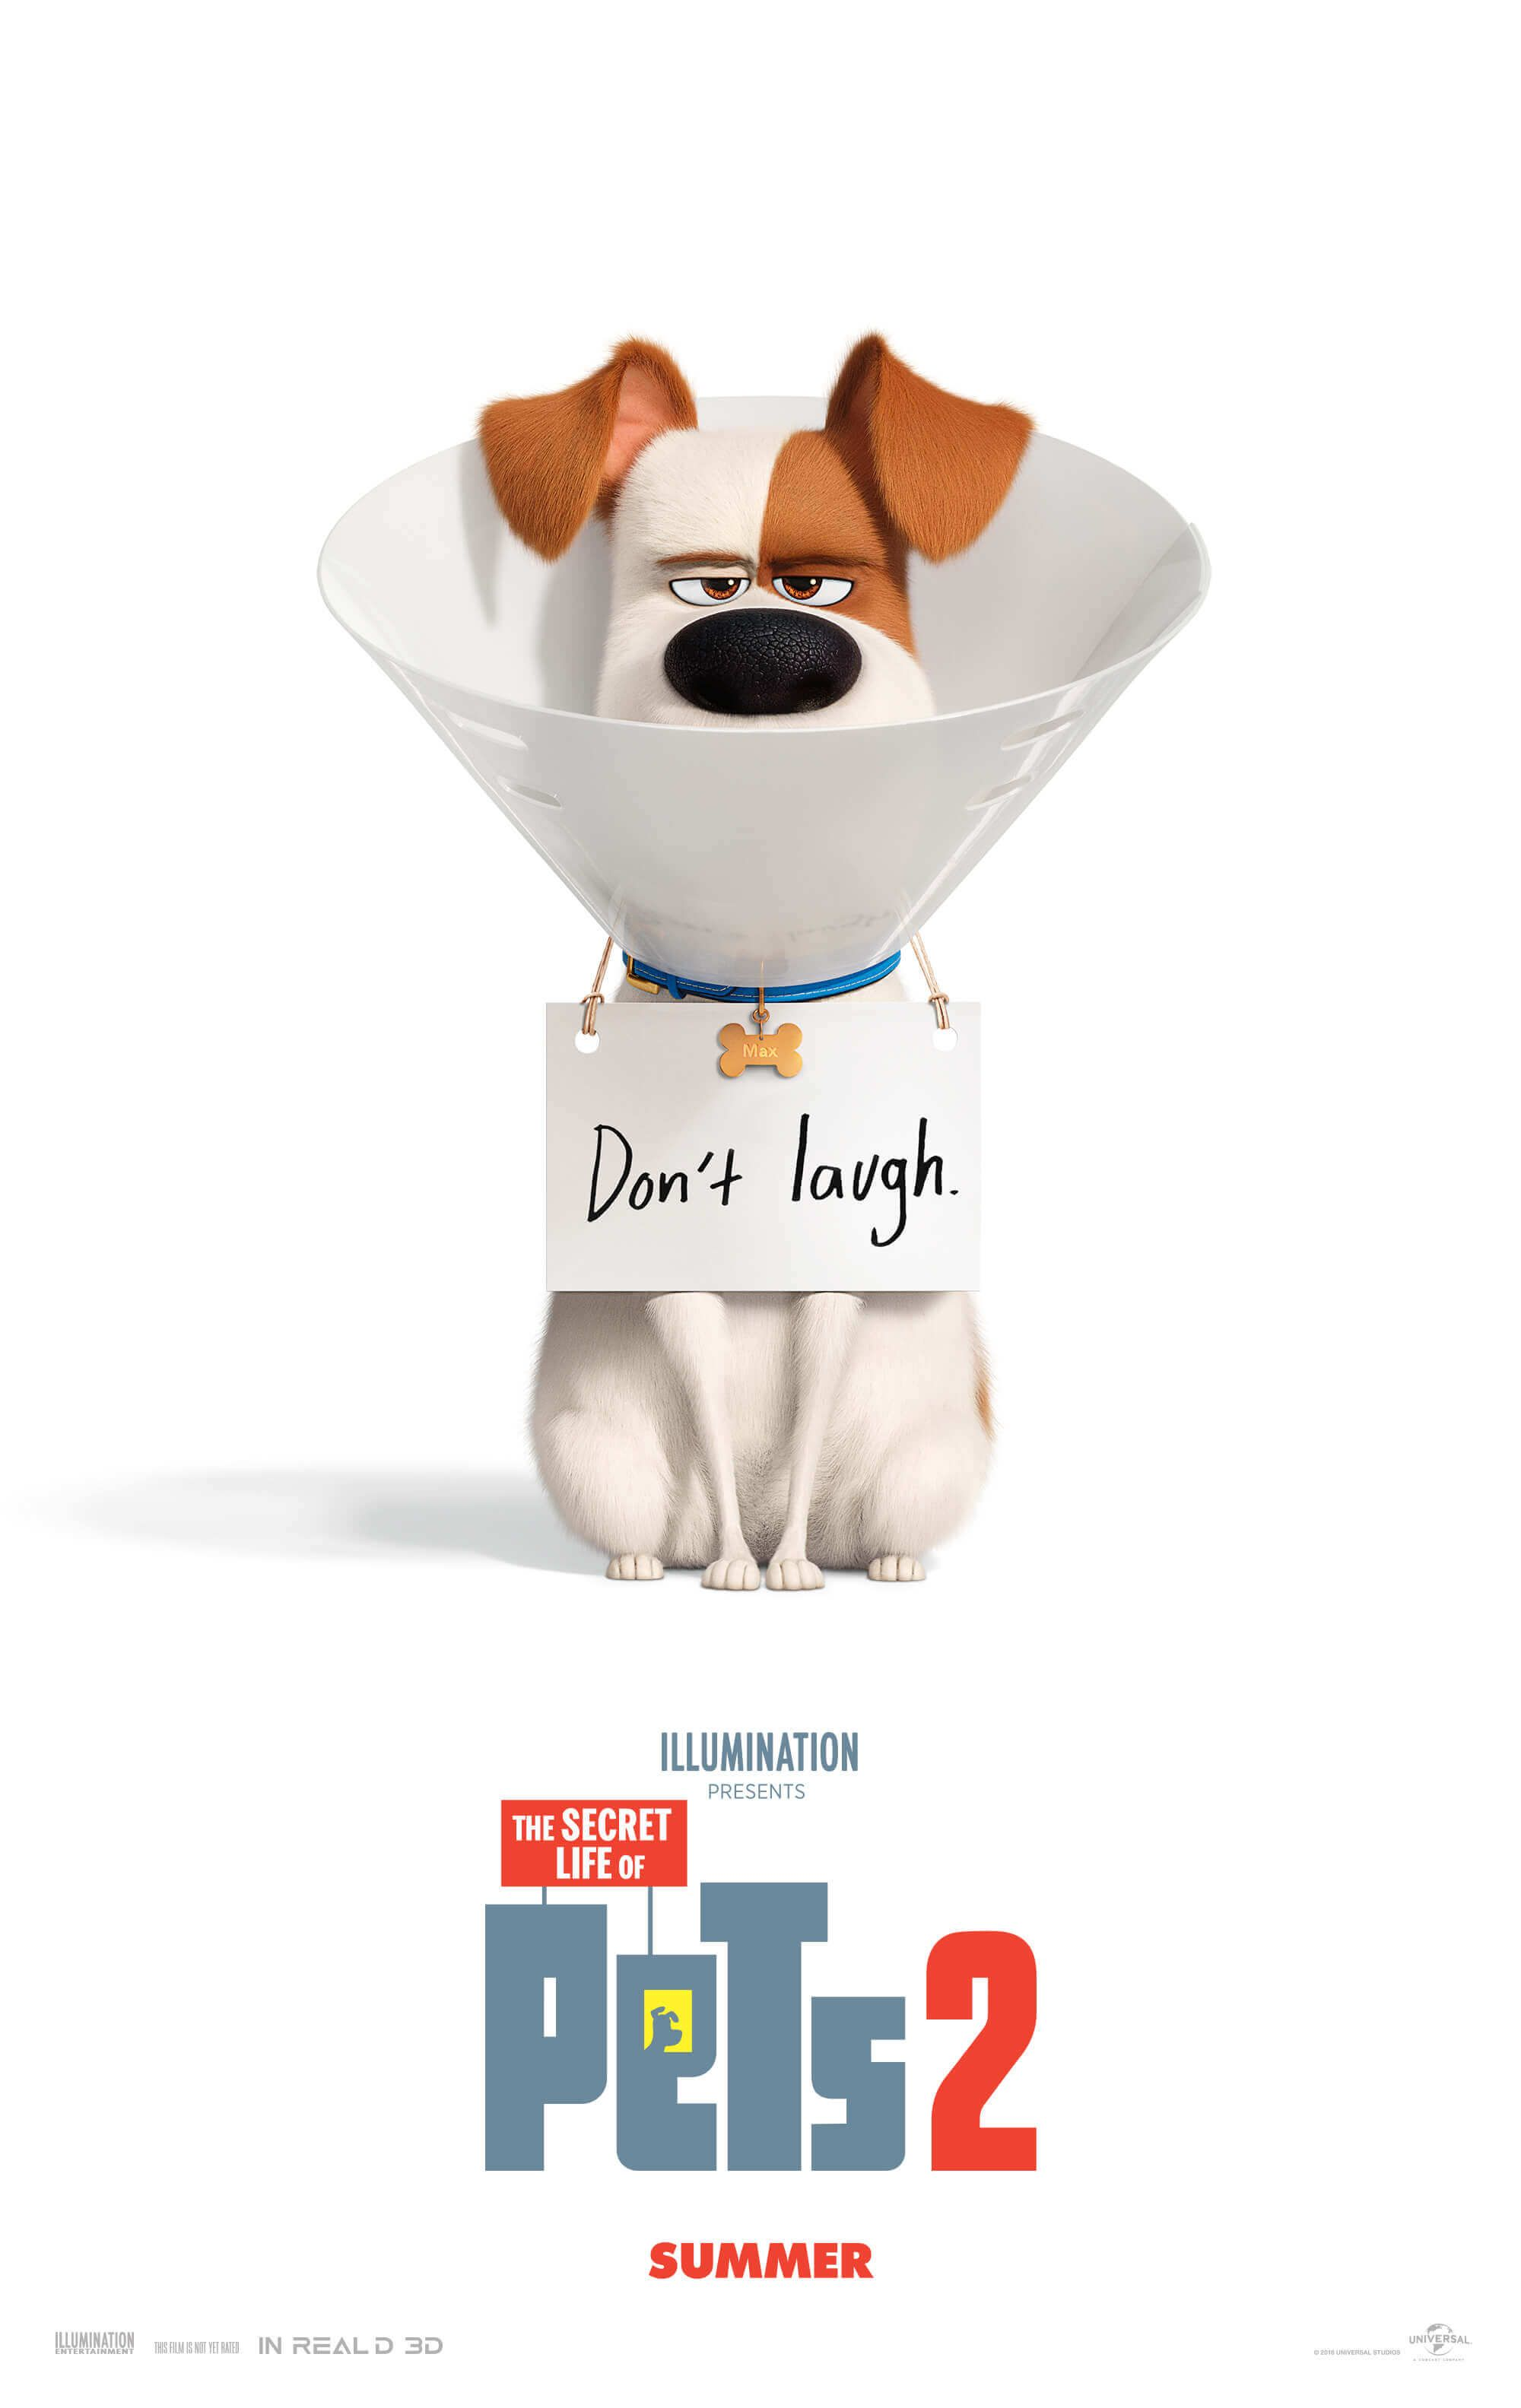 The Secret Life Of Pets 2 Movie Cast Pictures Own It On Digital Now 4k Ultra Hd Blu Ray Dvd A Secret Life Of Pets Full Movies Download Secret Life